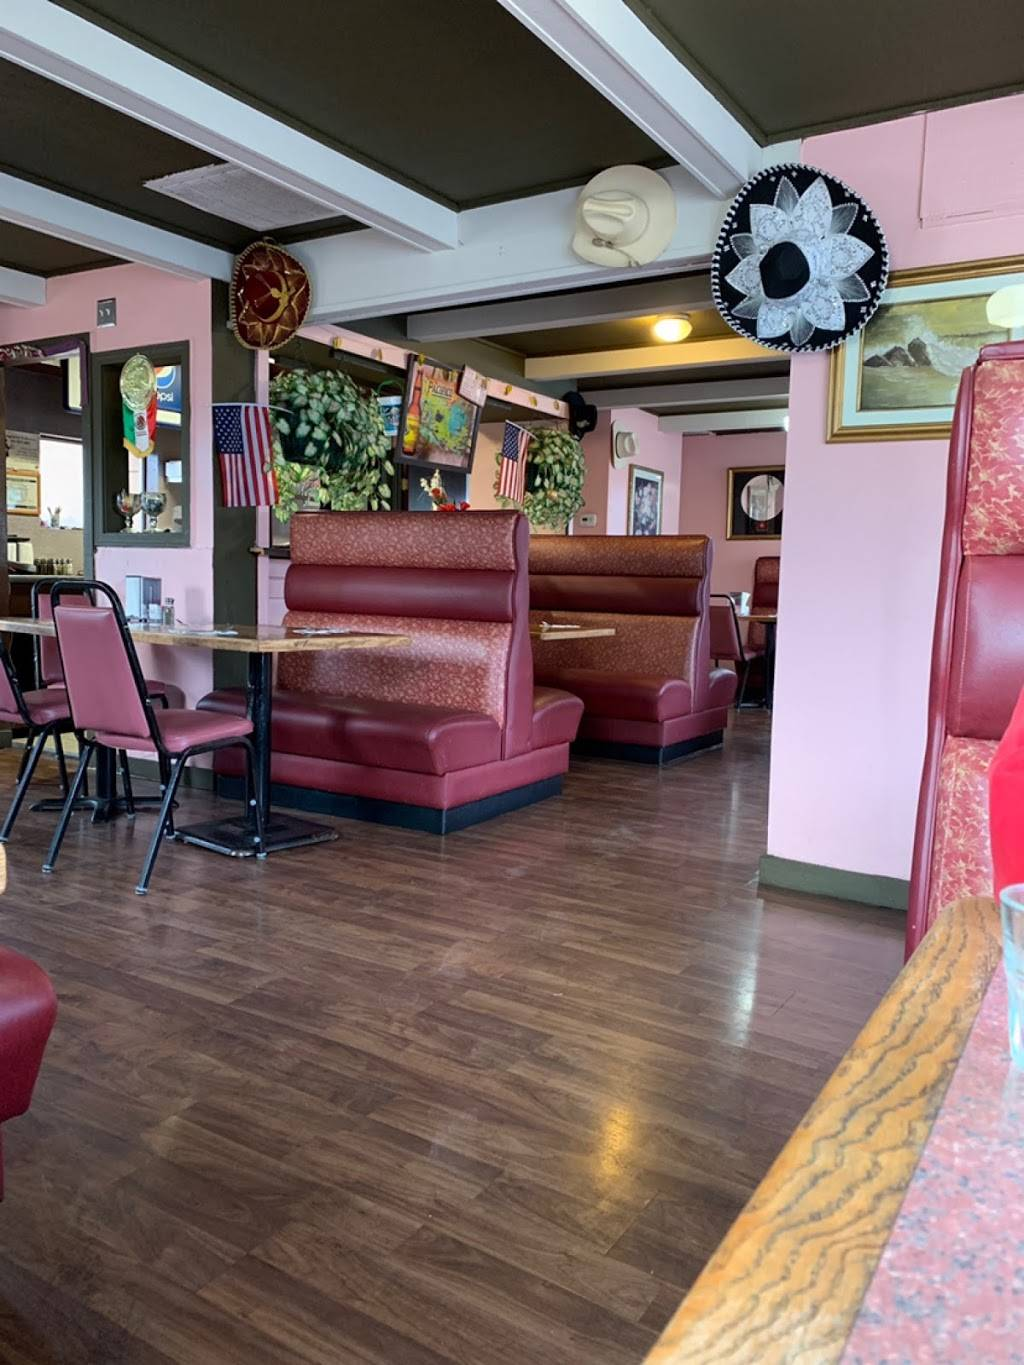 Two Brothers Family Mexican Restaurant | restaurant | 38786 Pioneer Blvd, Sandy, OR 97055, USA | 5036688164 OR +1 503-668-8164